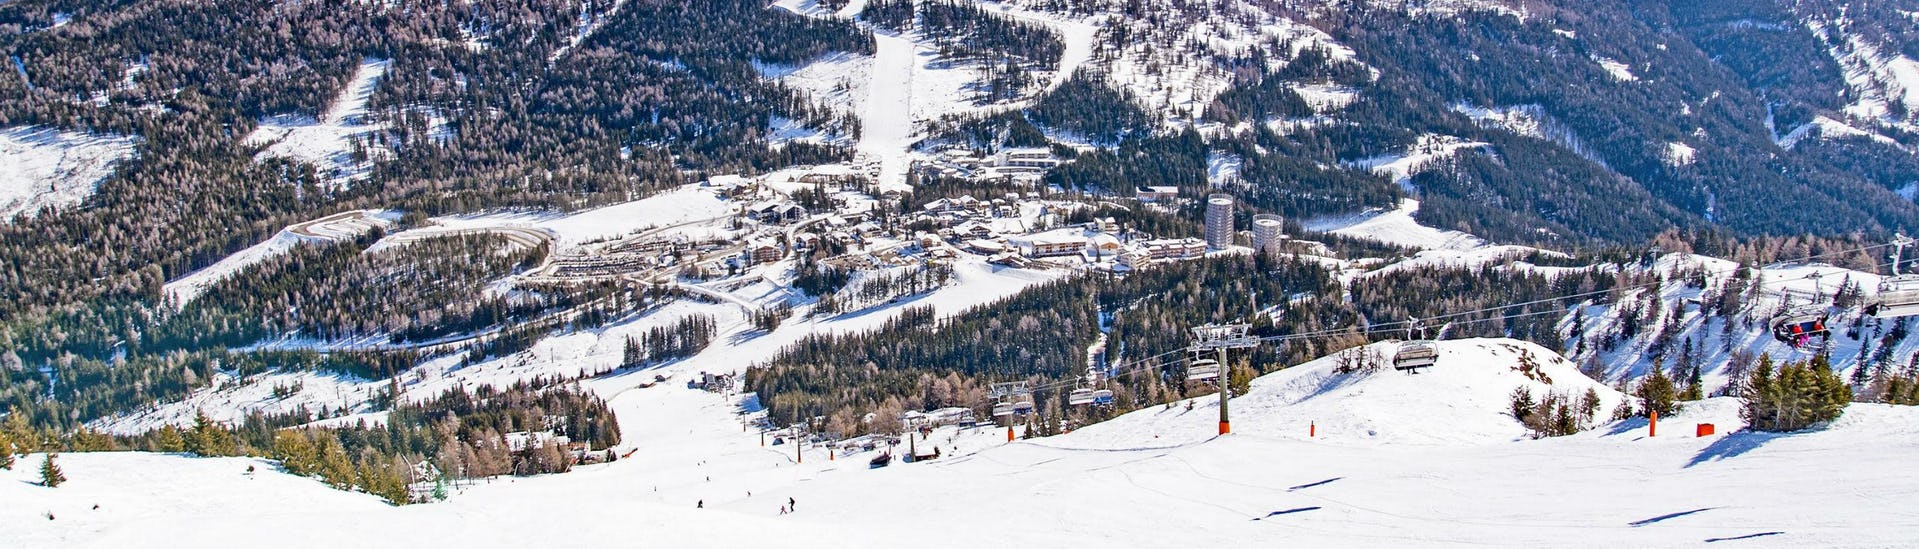 A view of the snow-covered ski slopes in the Austrian ski resort of Katschberg, where skiers can book ski lessons with one of the local ski schools.